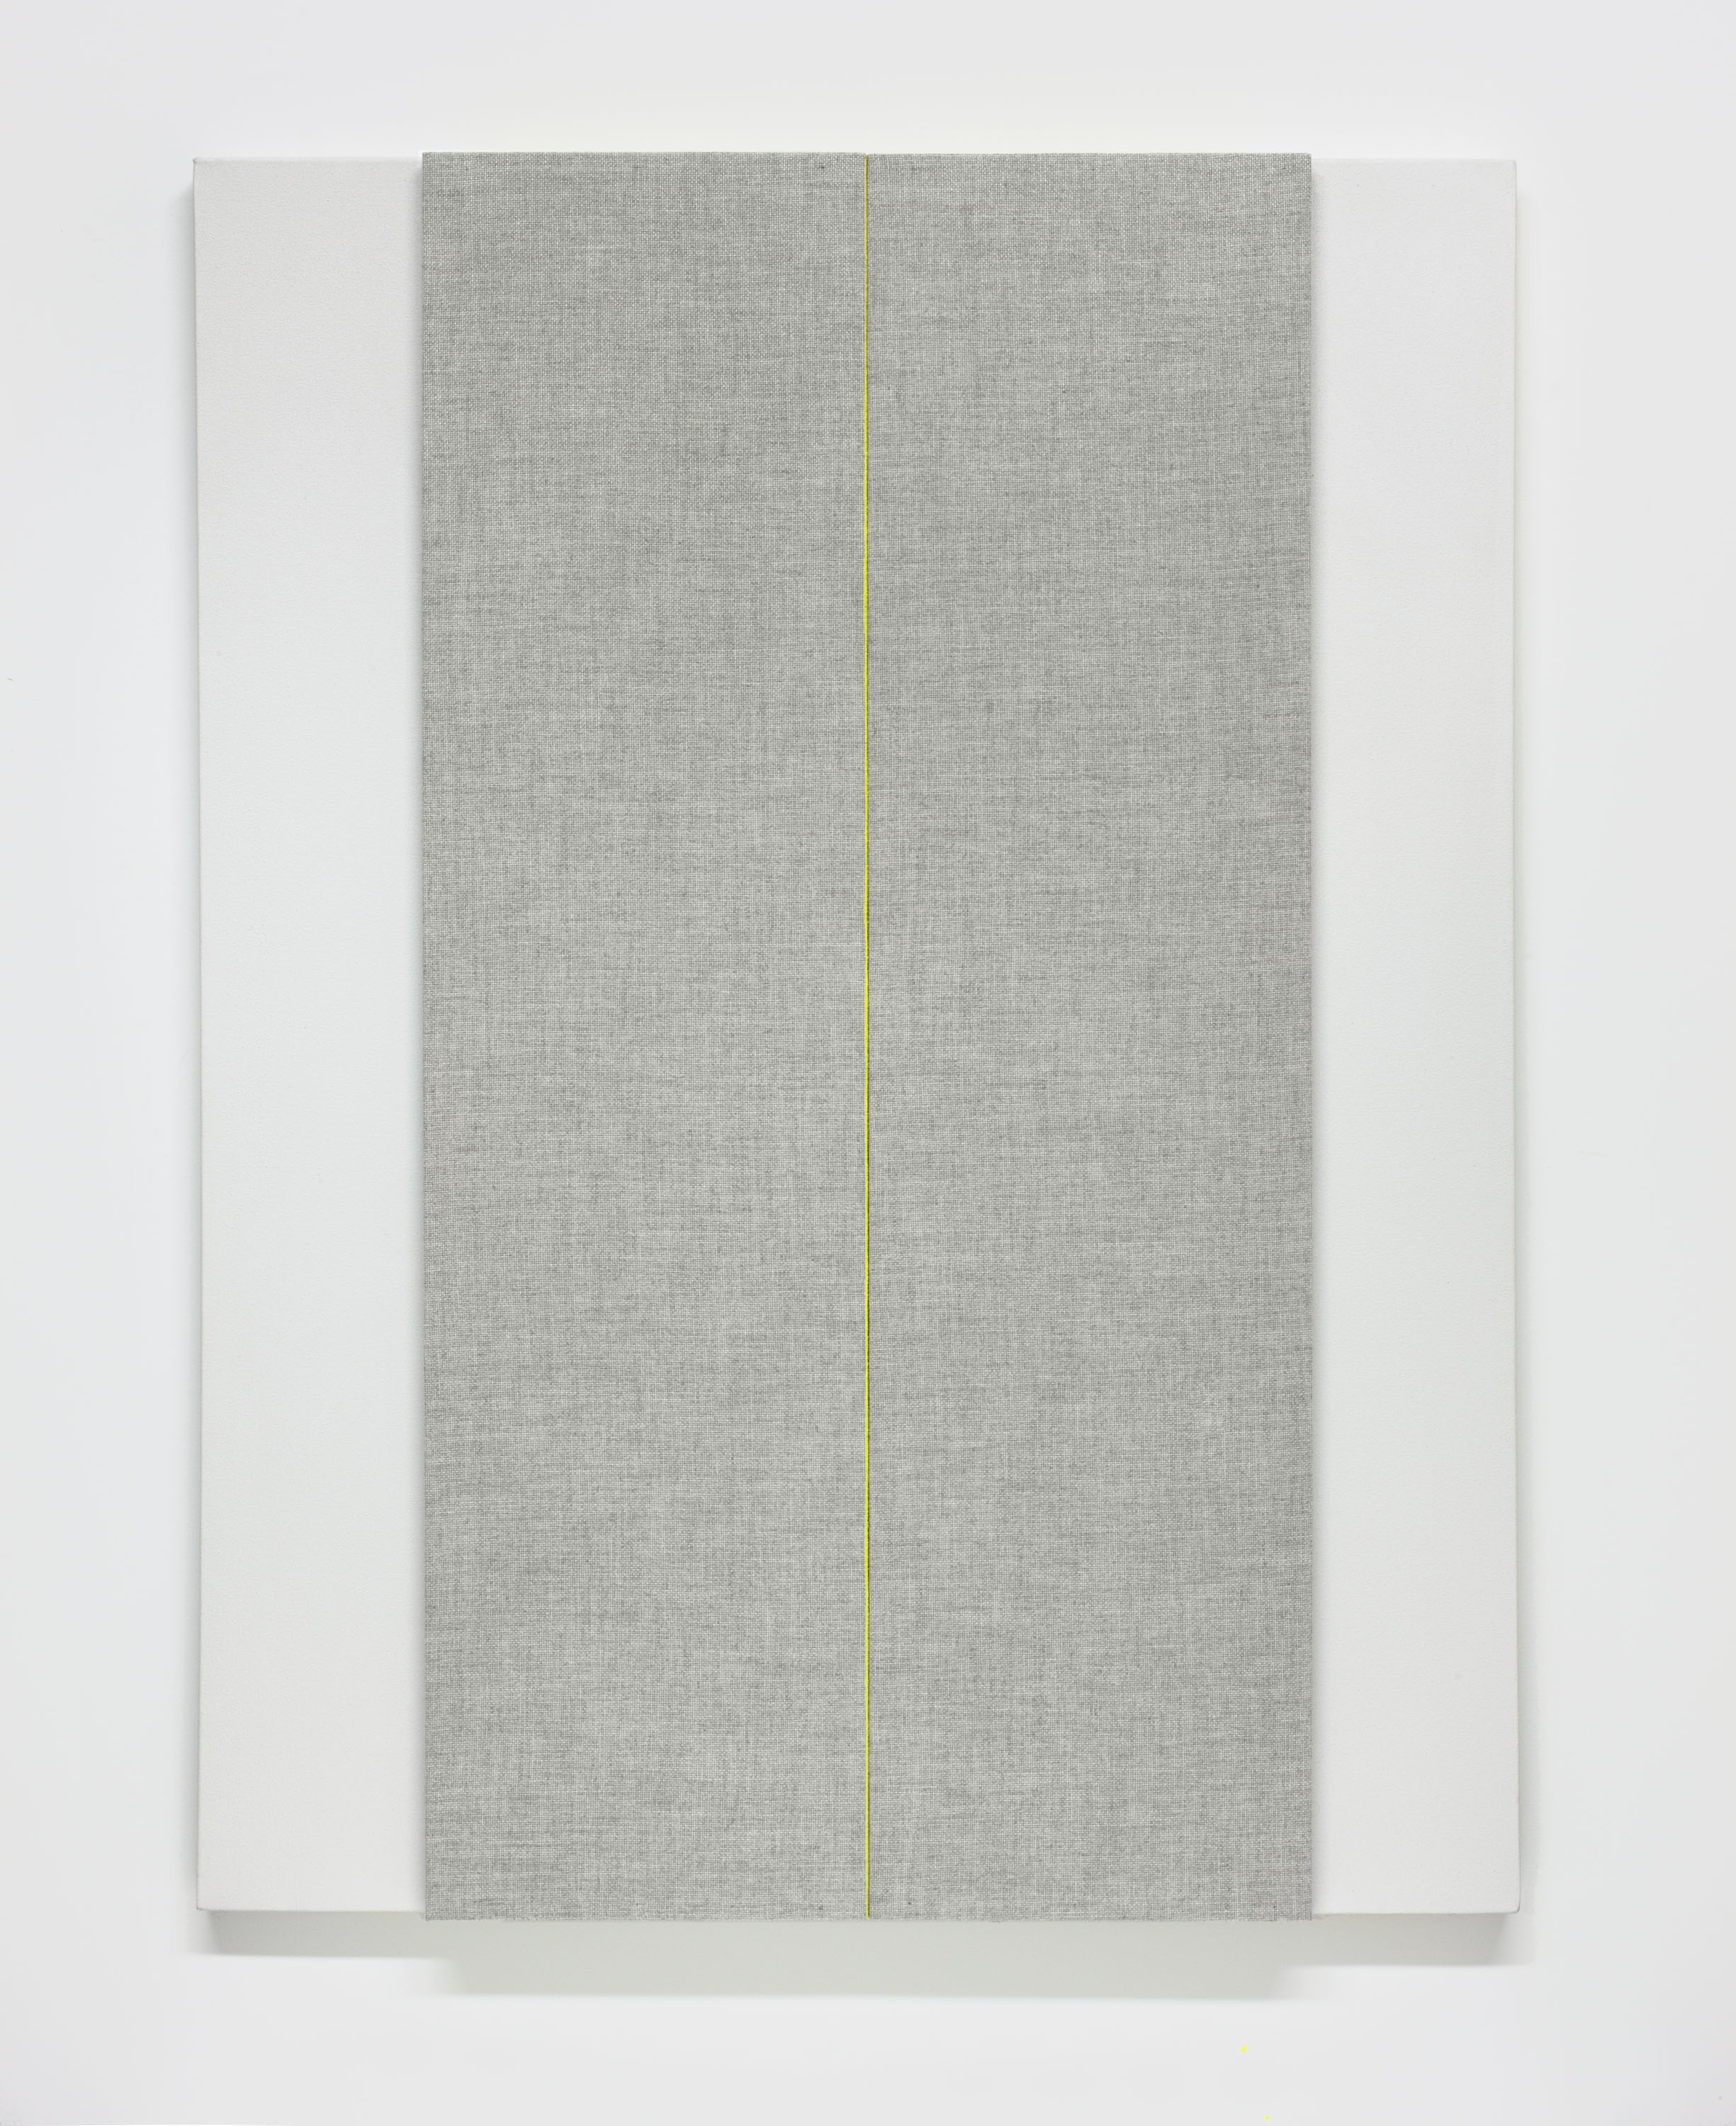 Light Gray with Middle C (variation #2)--Acoustic absorber panel and acrylic paint on canvas, 36 x 48 inches, 2013.